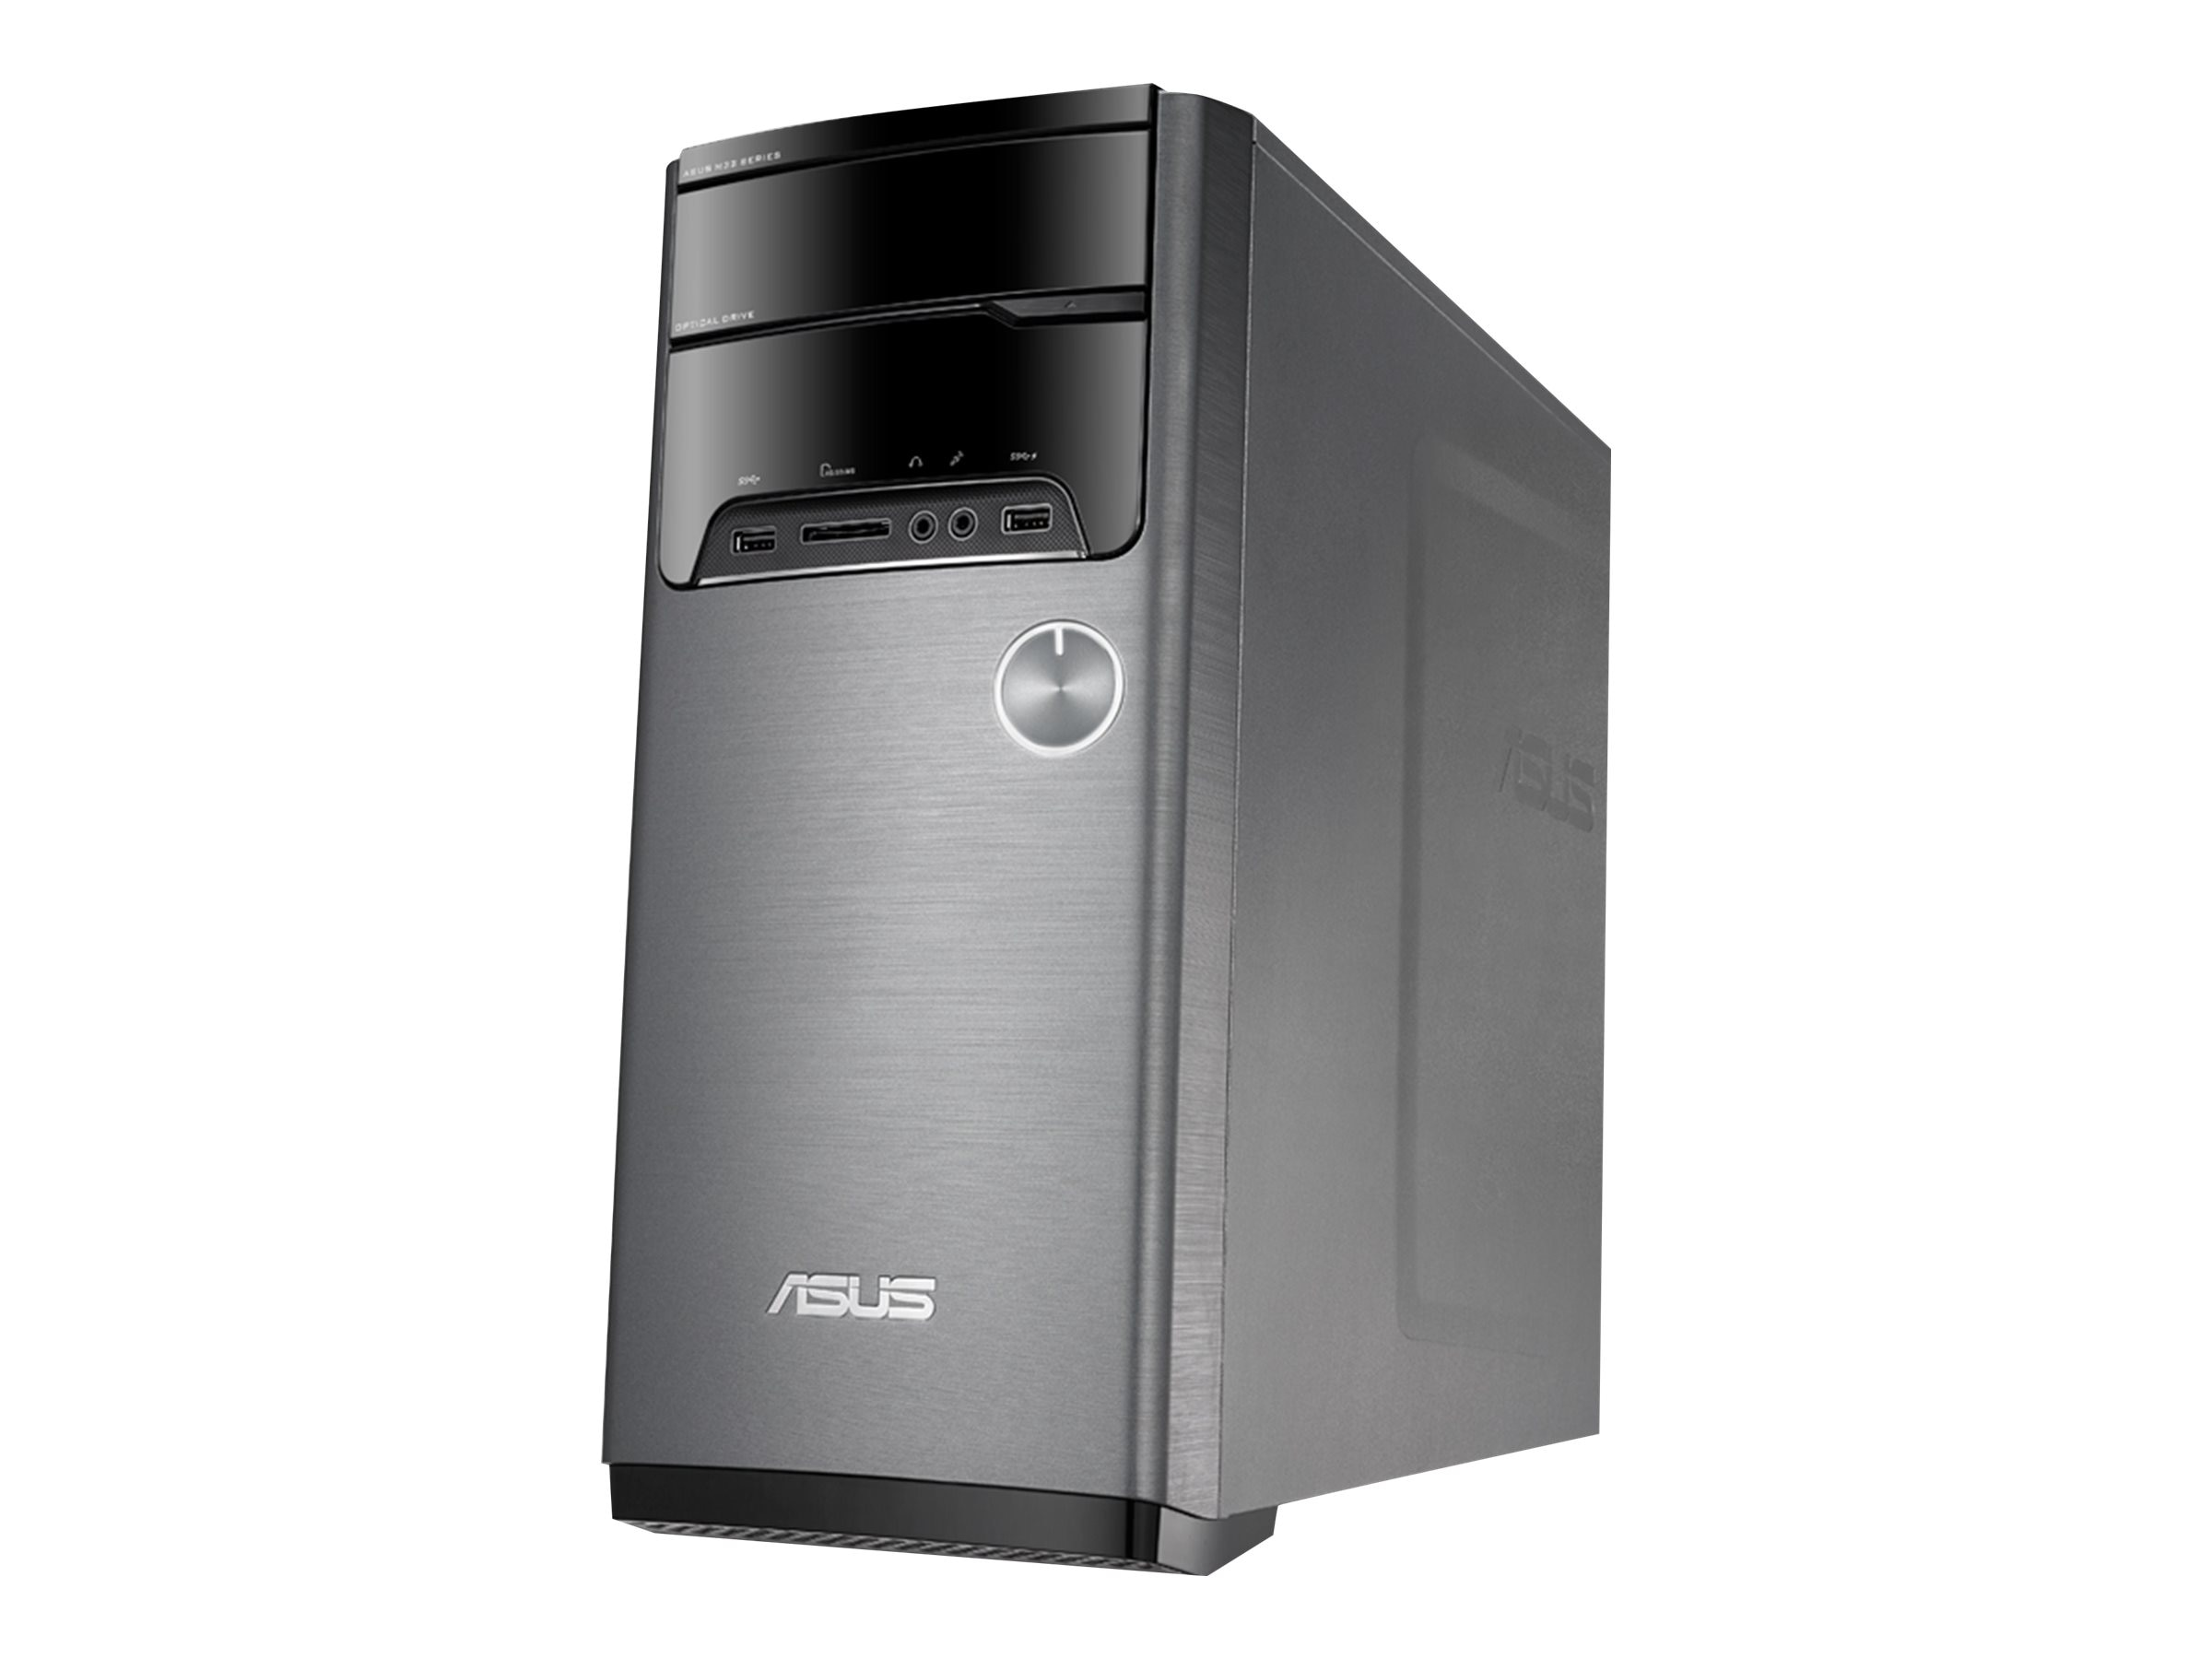 Asus M32BF-US025S Desktop AMD A58 4460 12GB 2TB, M32BF-US025S, 28185297, Desktops